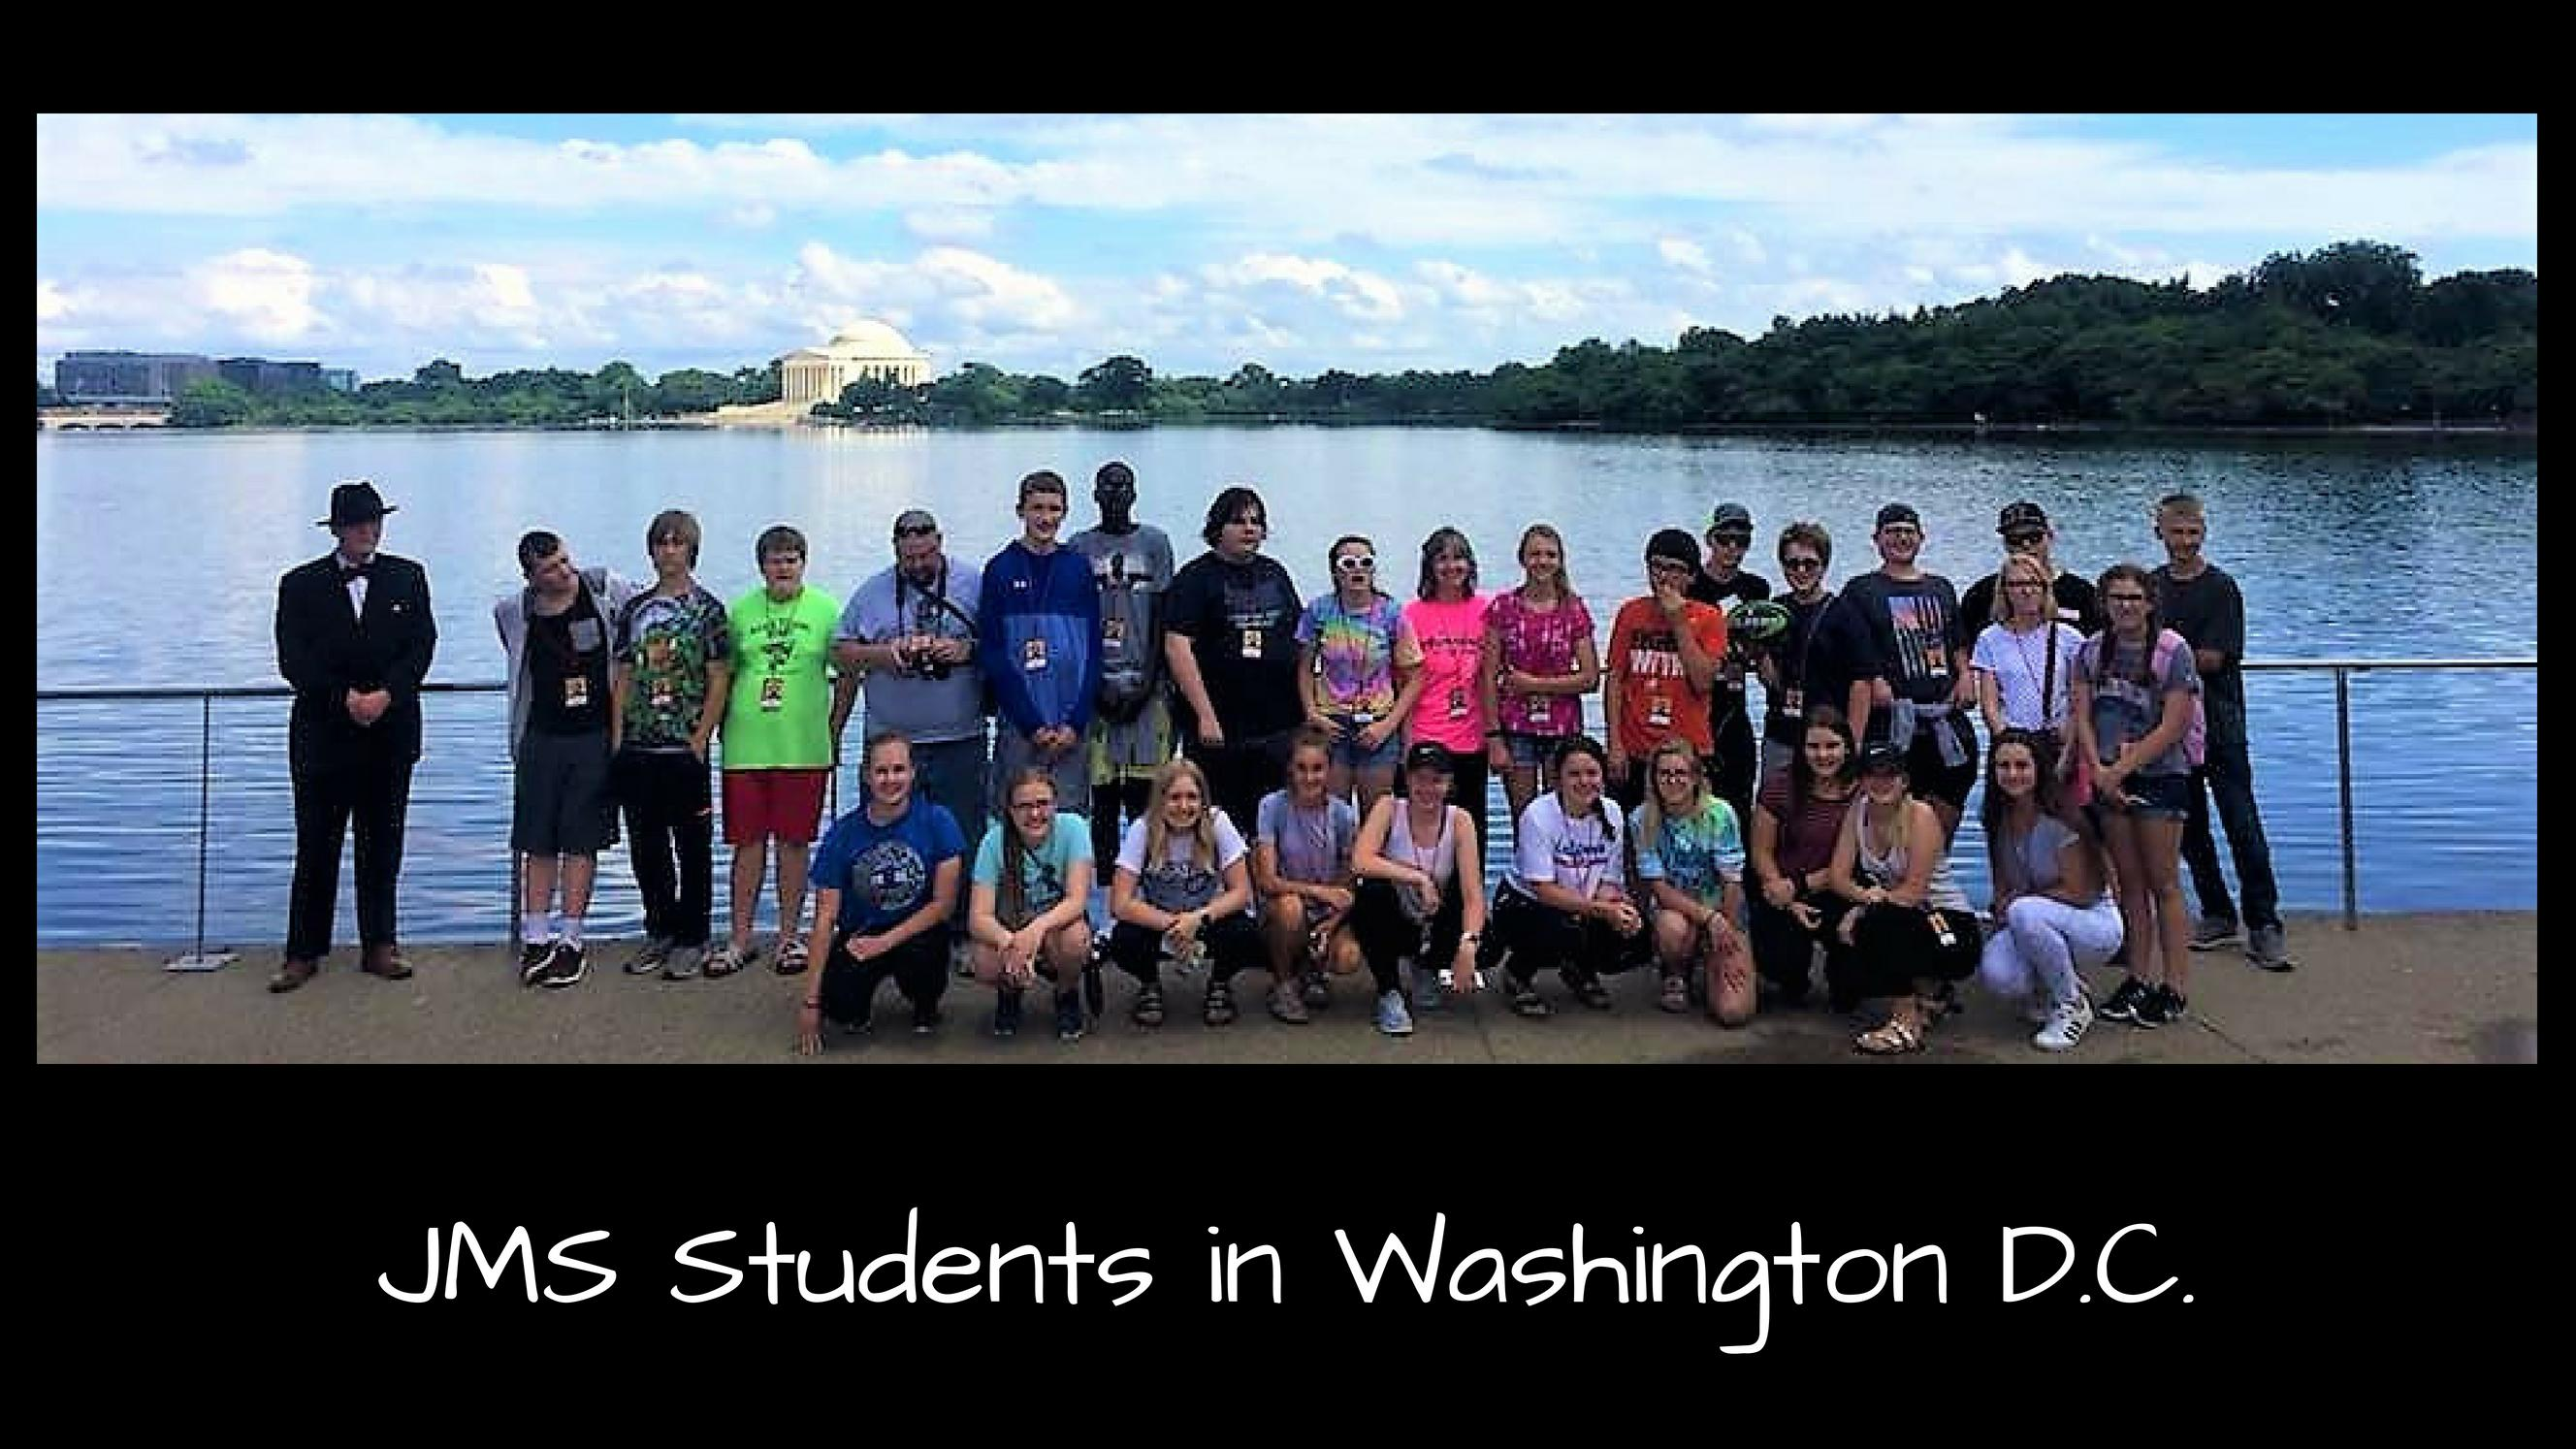 JMS Students in Washington D.C.